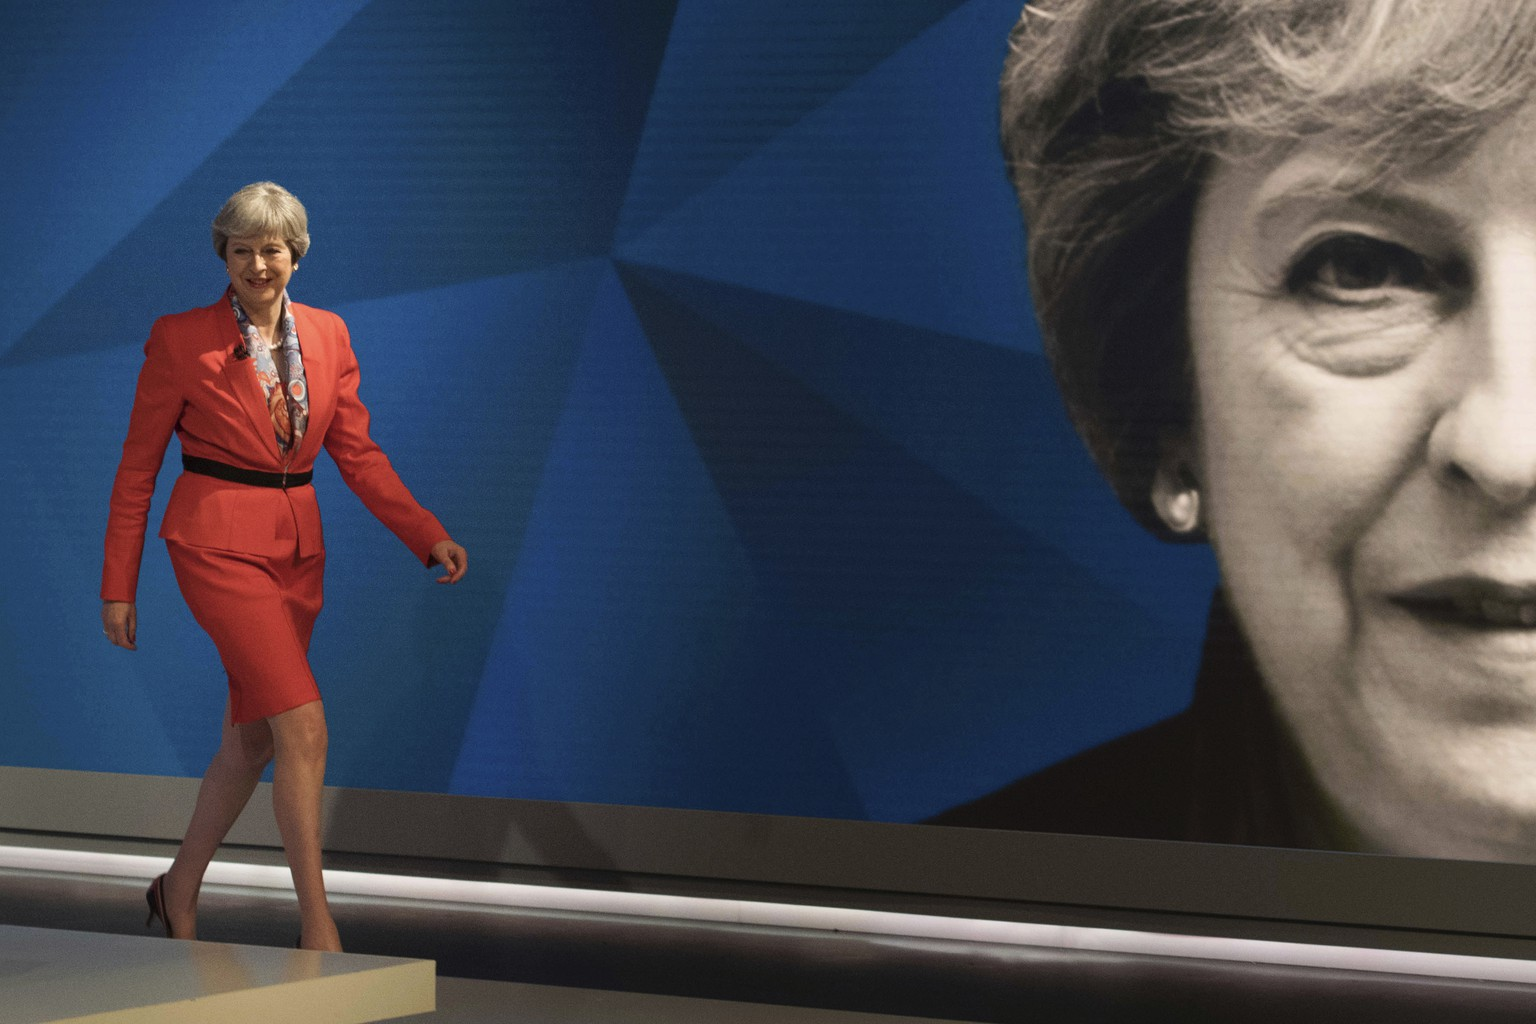 British Prime Minister Theresa May walks out to take part in a general election broadcast, in London, Monday May 29, 2017. Prime Minister Theresa May and Labour Party leader Jeremy Corbyn will face a live studio audience and a tough TV interviewer as the general election campaign moves to the airwaves. (Stefan Rousseau/ Pool Photo via AP)